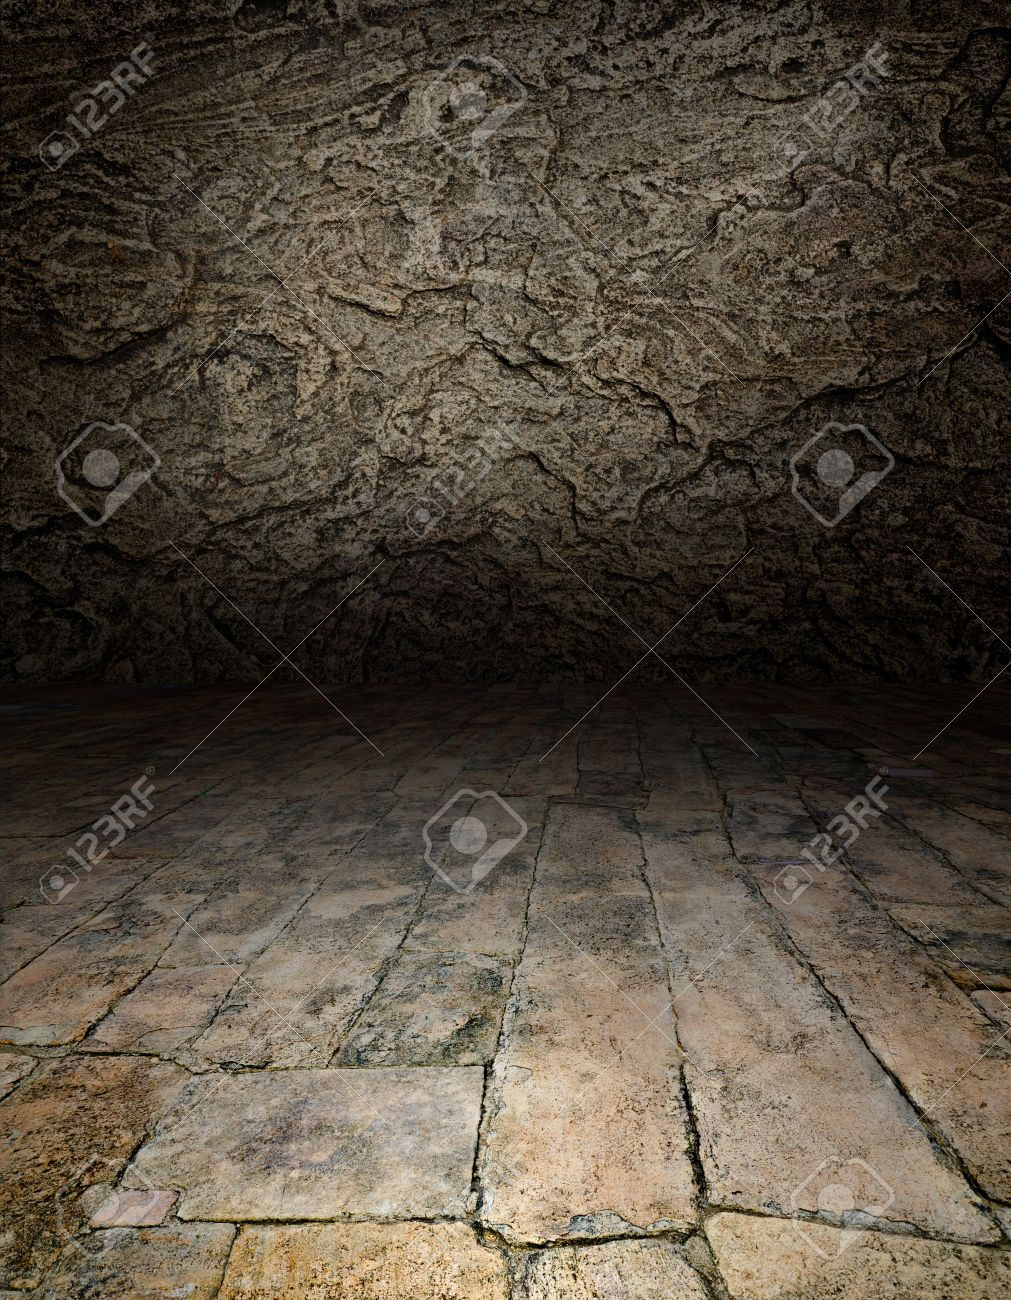 Artistic interiors - a scene with a stone floor Stock Photo - 13250214